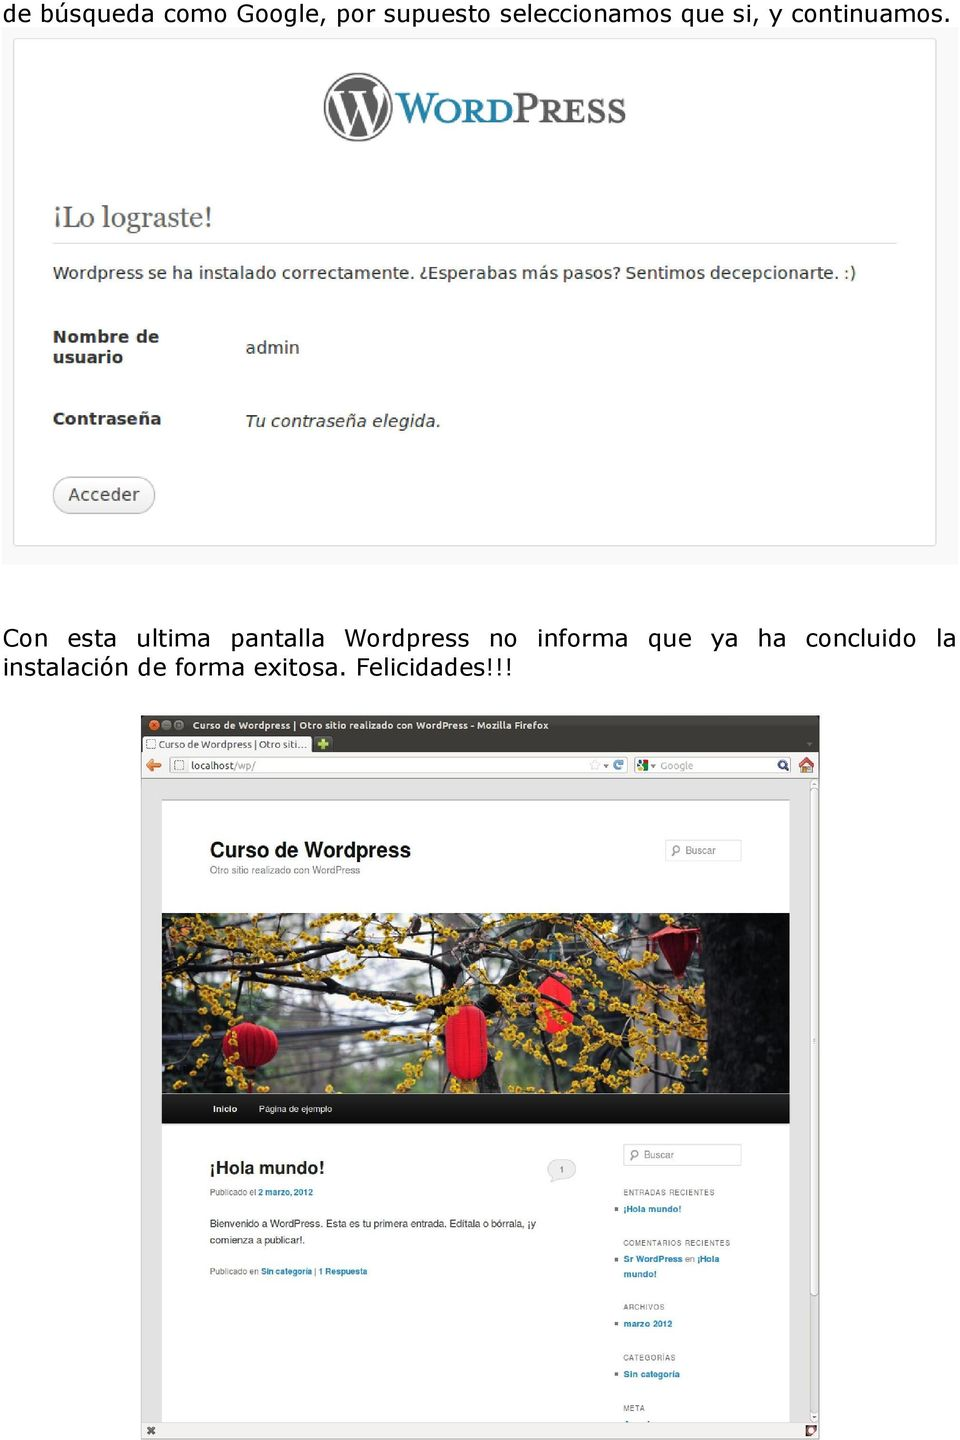 Con esta ultima pantalla Wordpress no informa